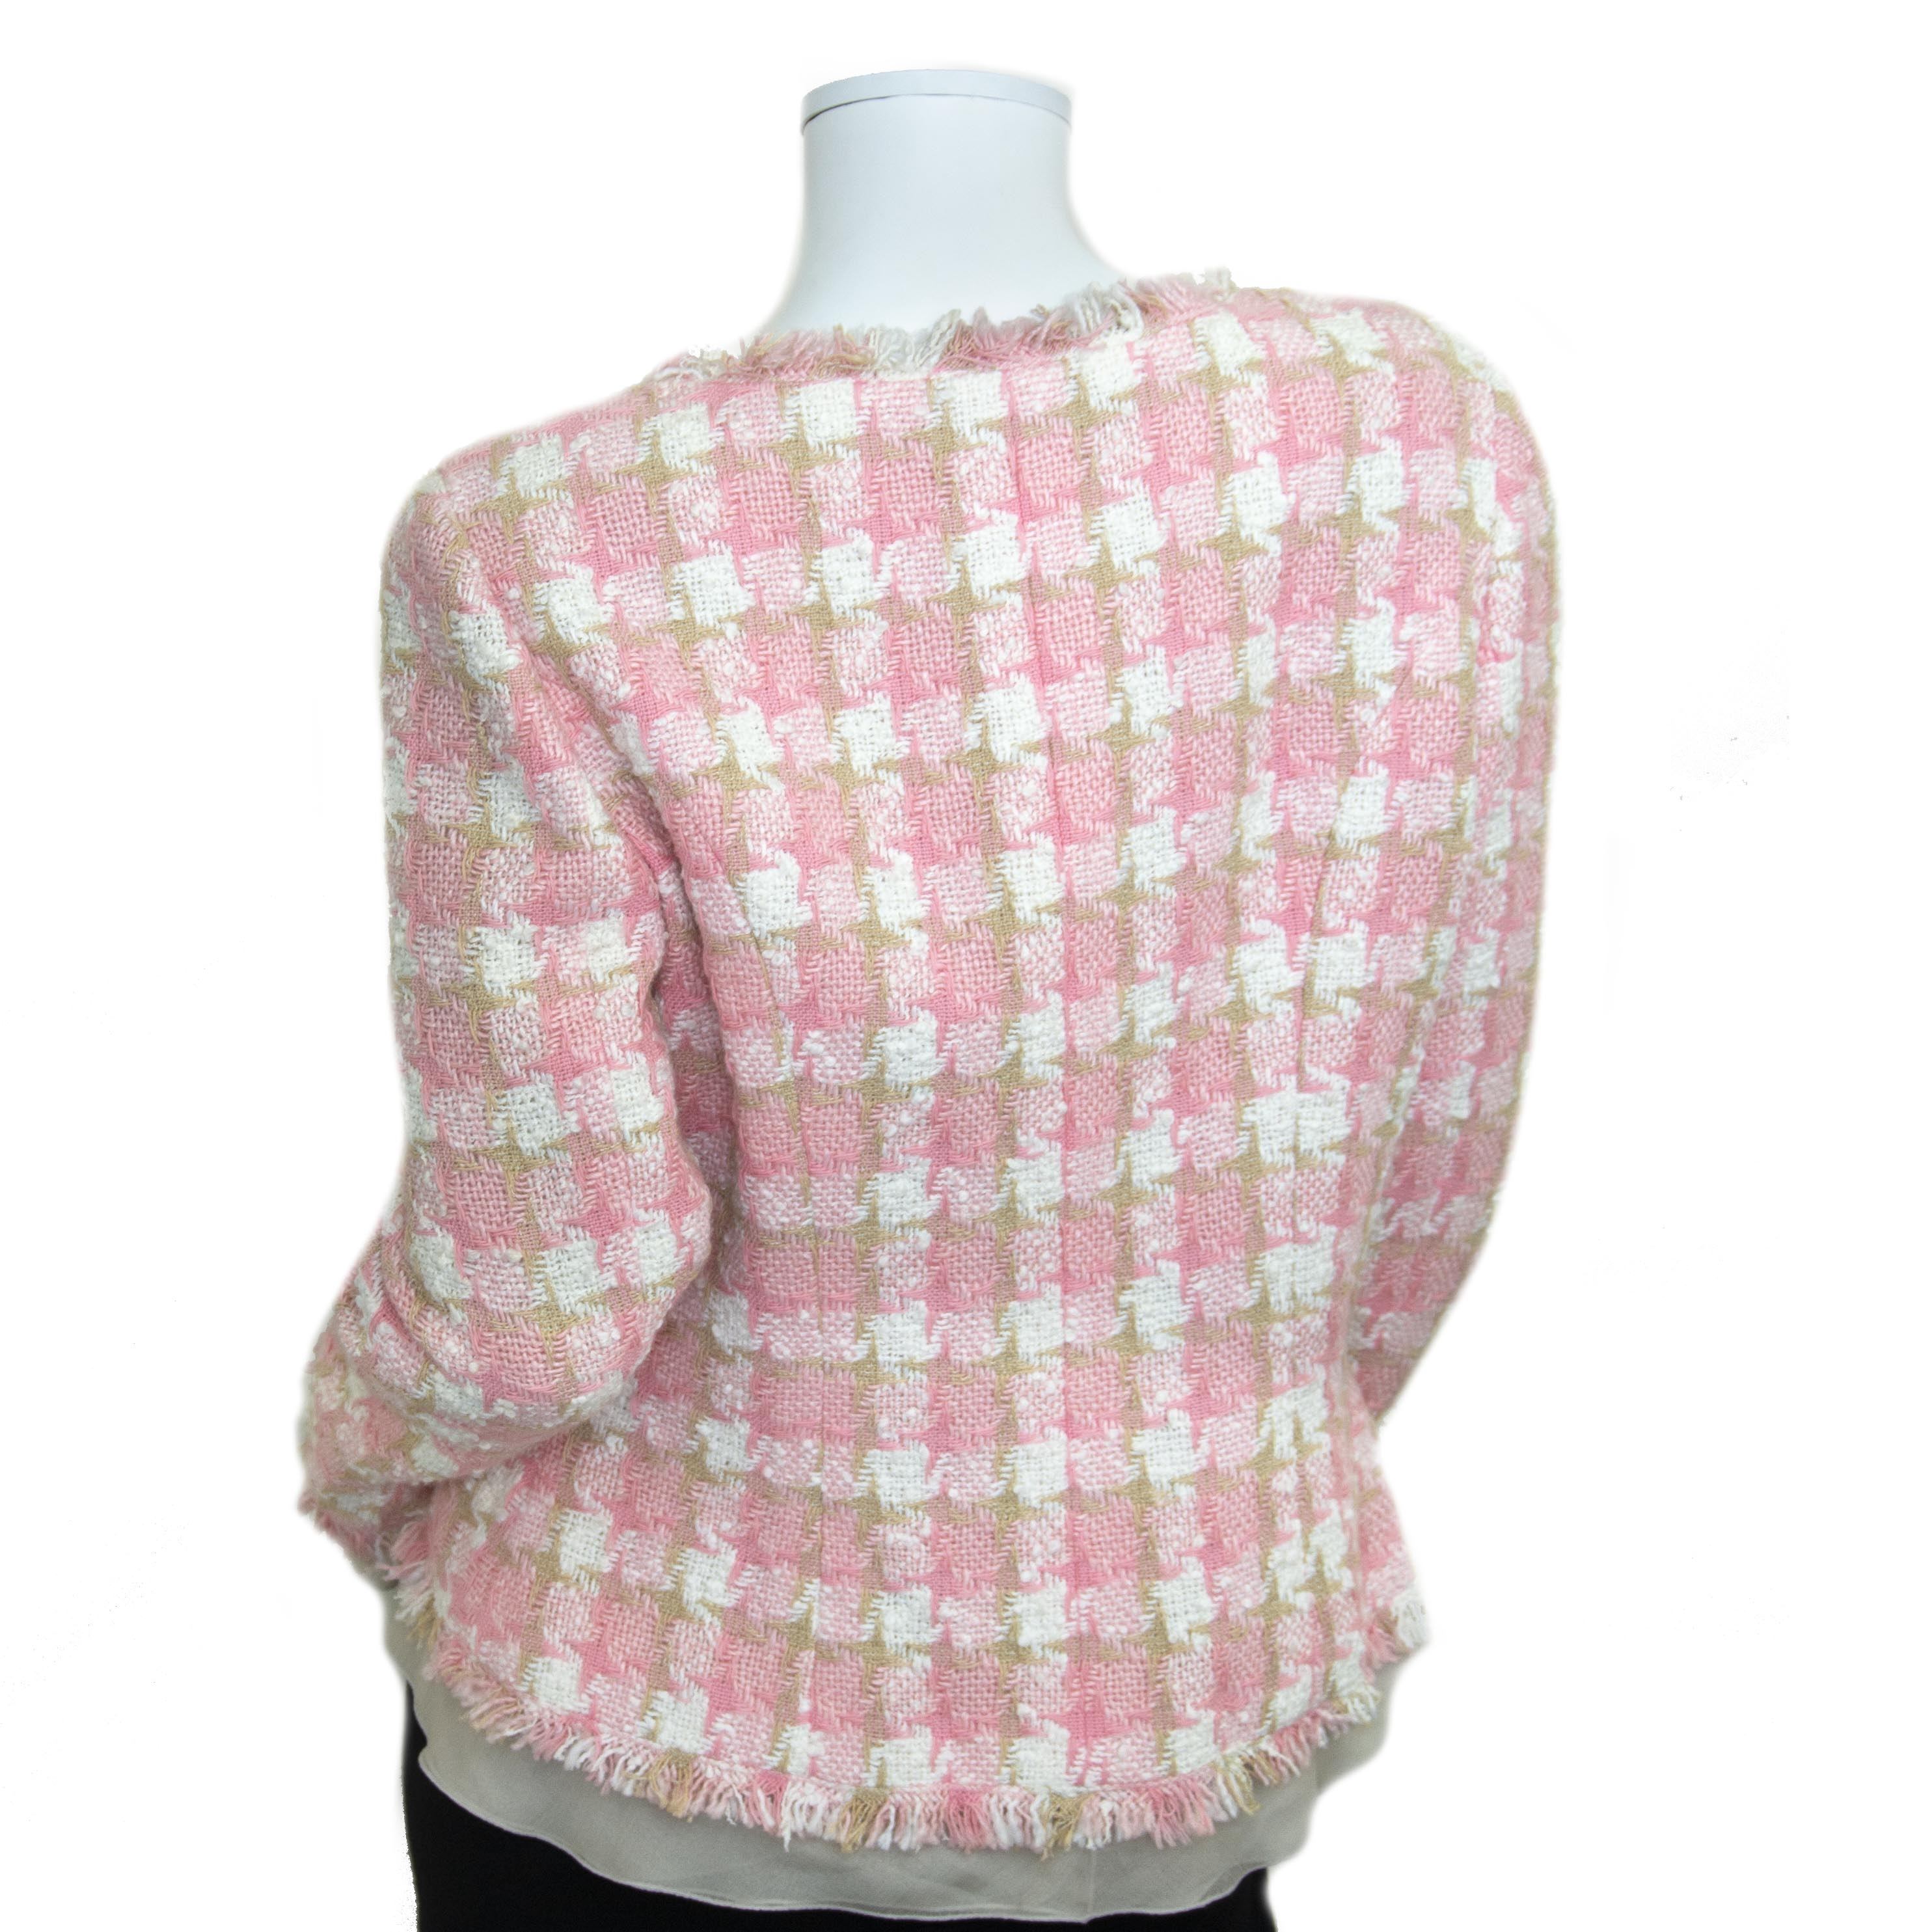 For the best price at LabelLov. Chanel Pink Tweed Jacket. Pour le meilleur prix à LabelLOV. Voor de beste prijs bij LabelLOV.